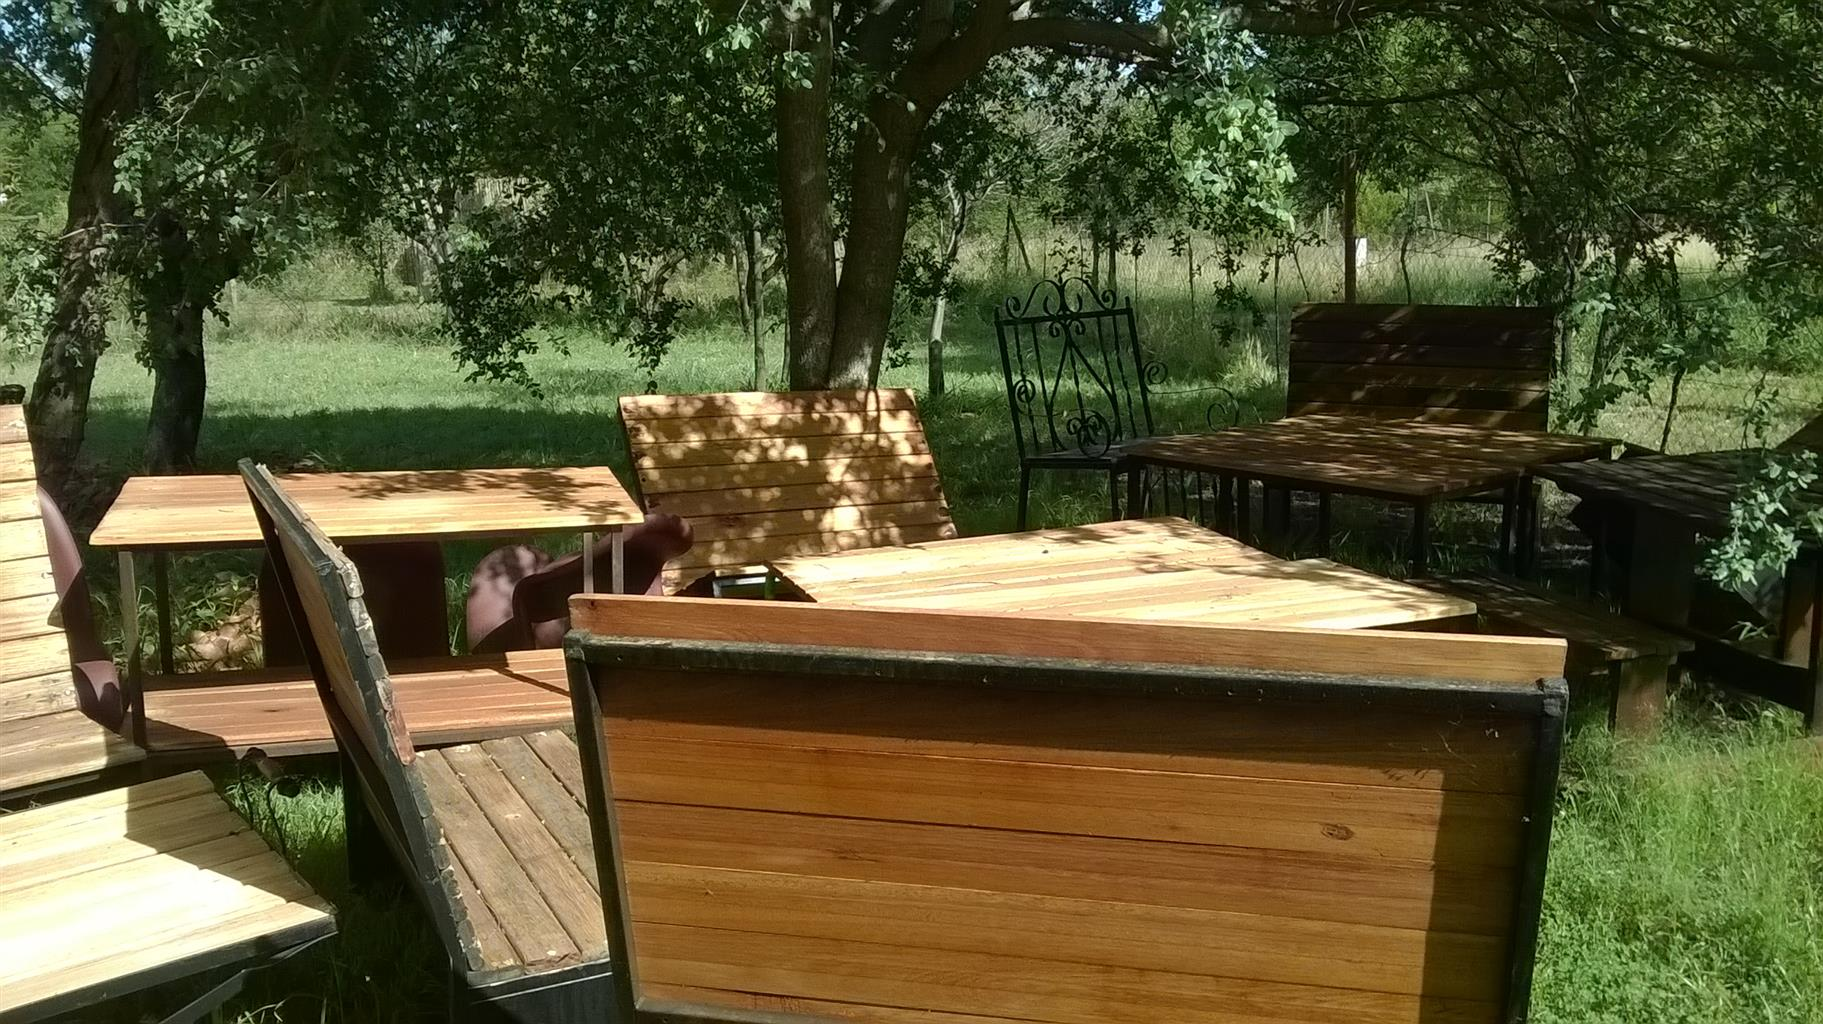 Wooden chairs and tables available